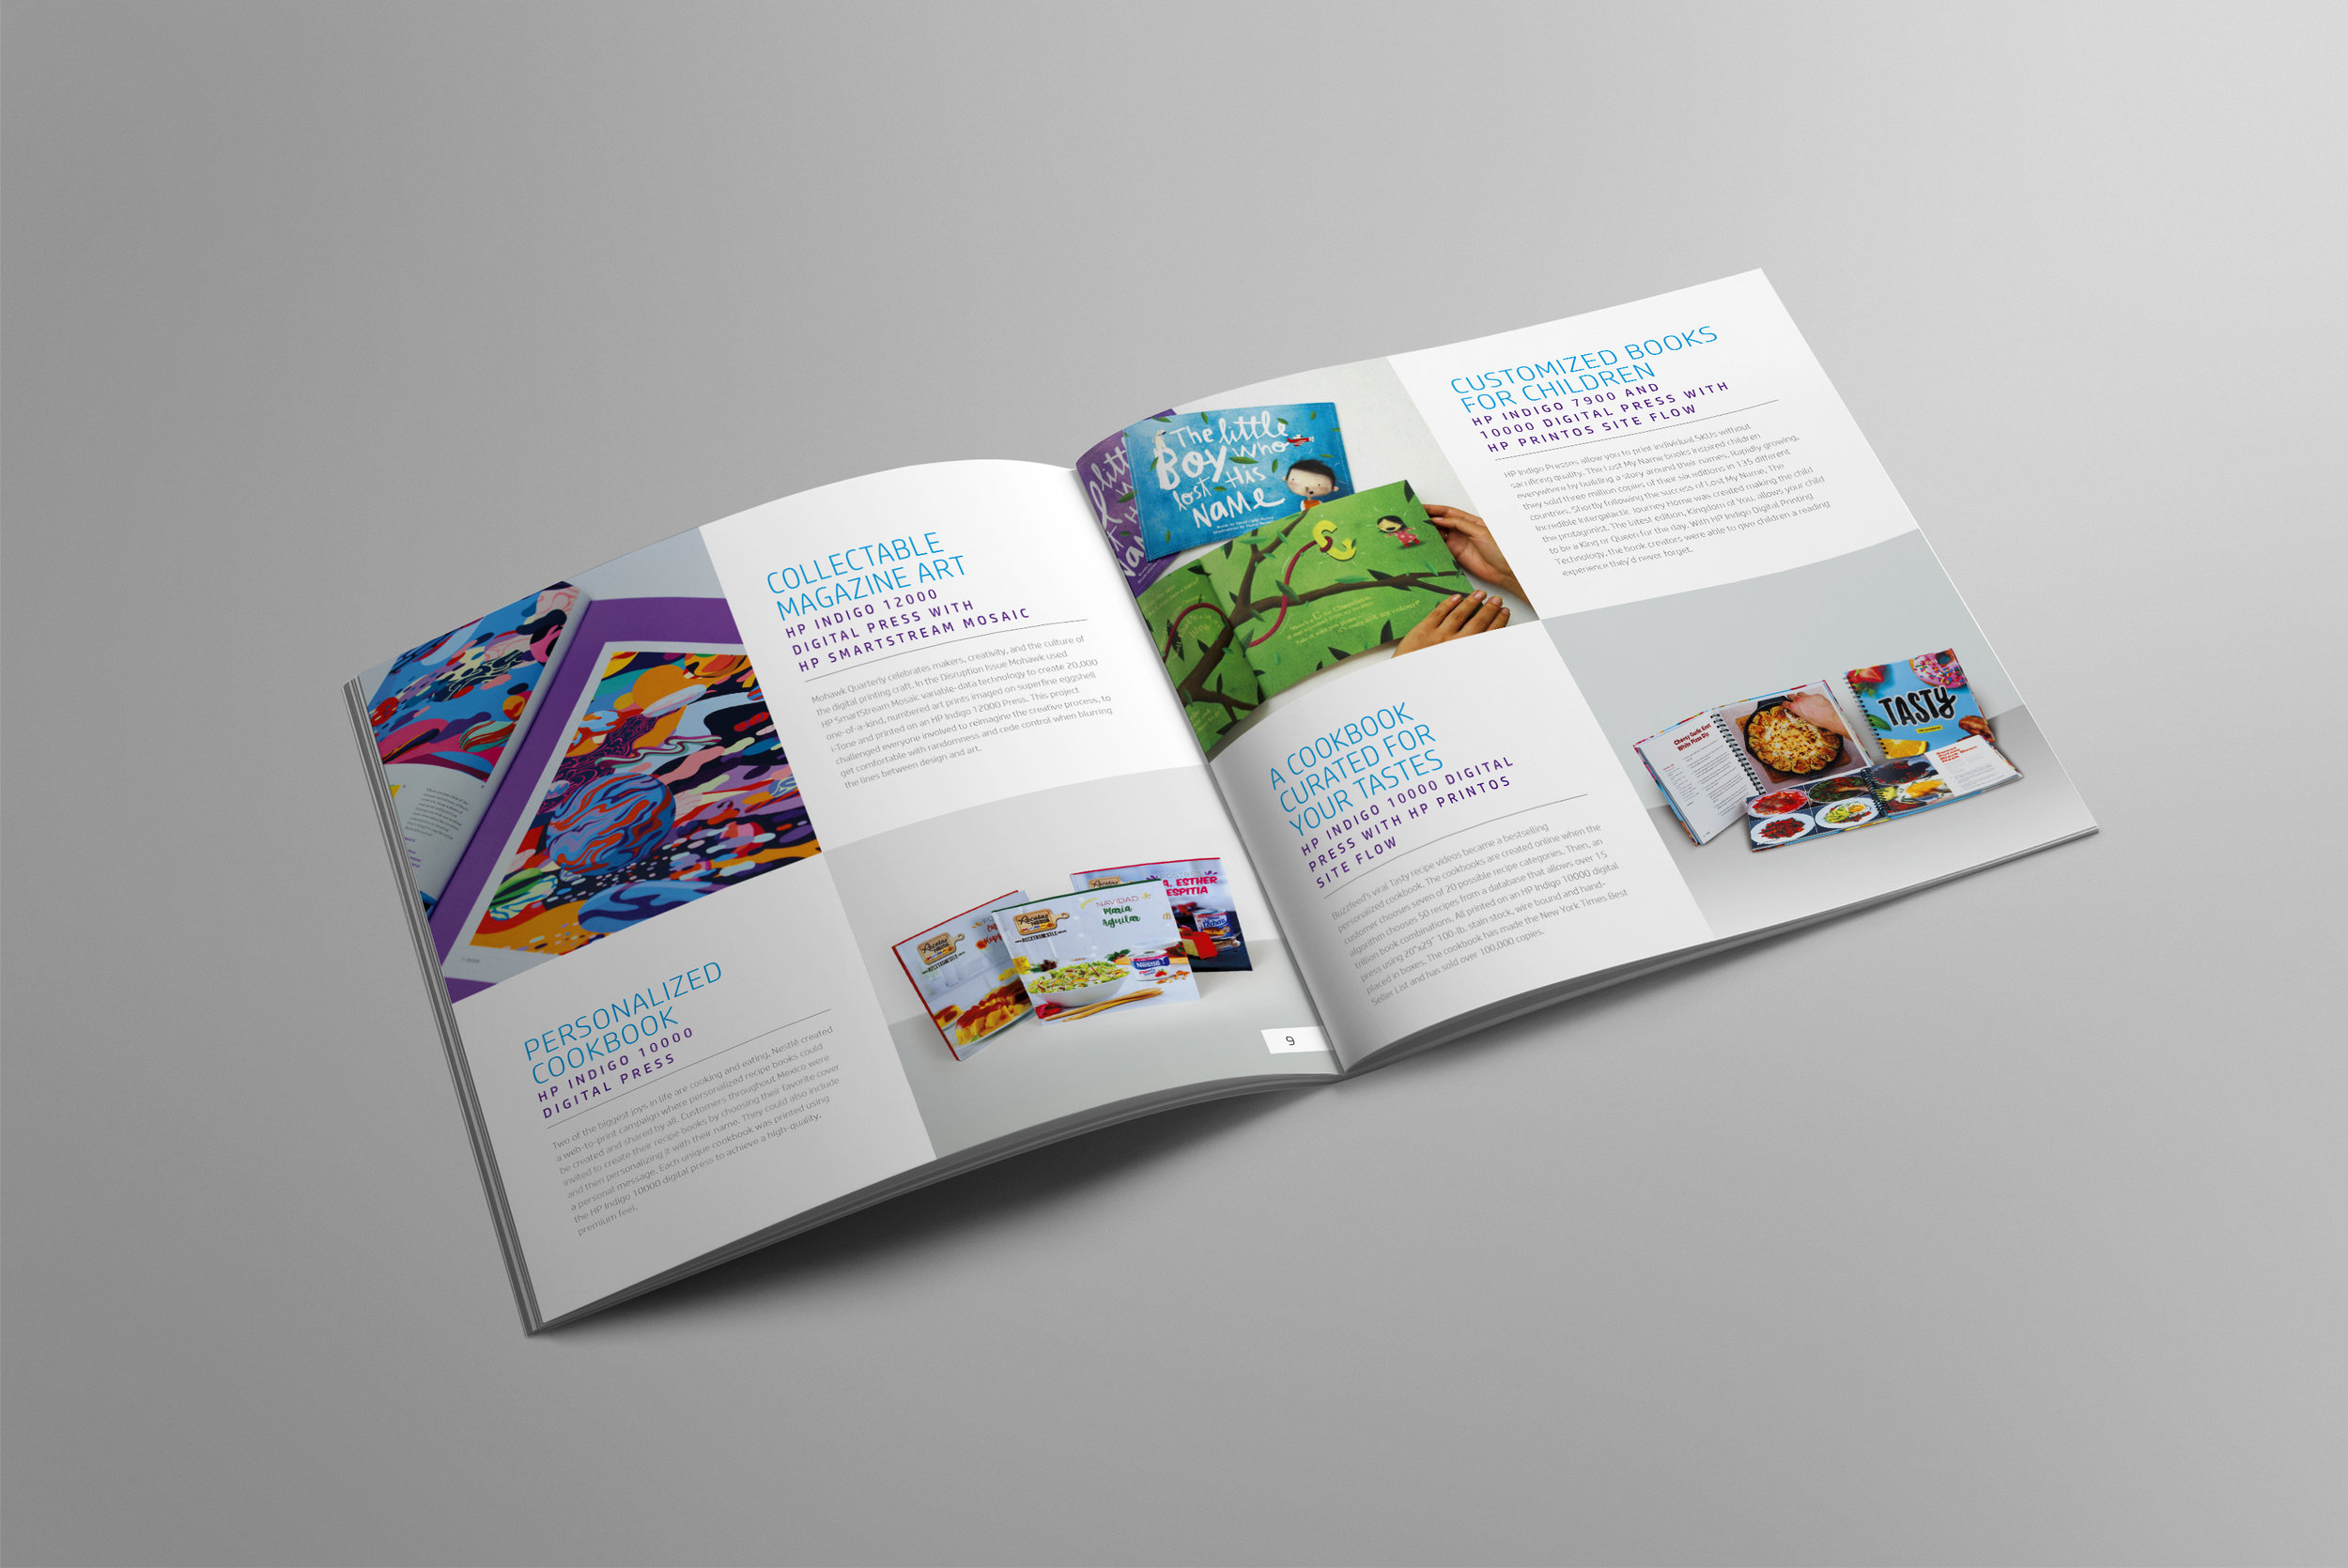 GSB211773_Booklet_Storyland_Case_Study_Spread.jpg